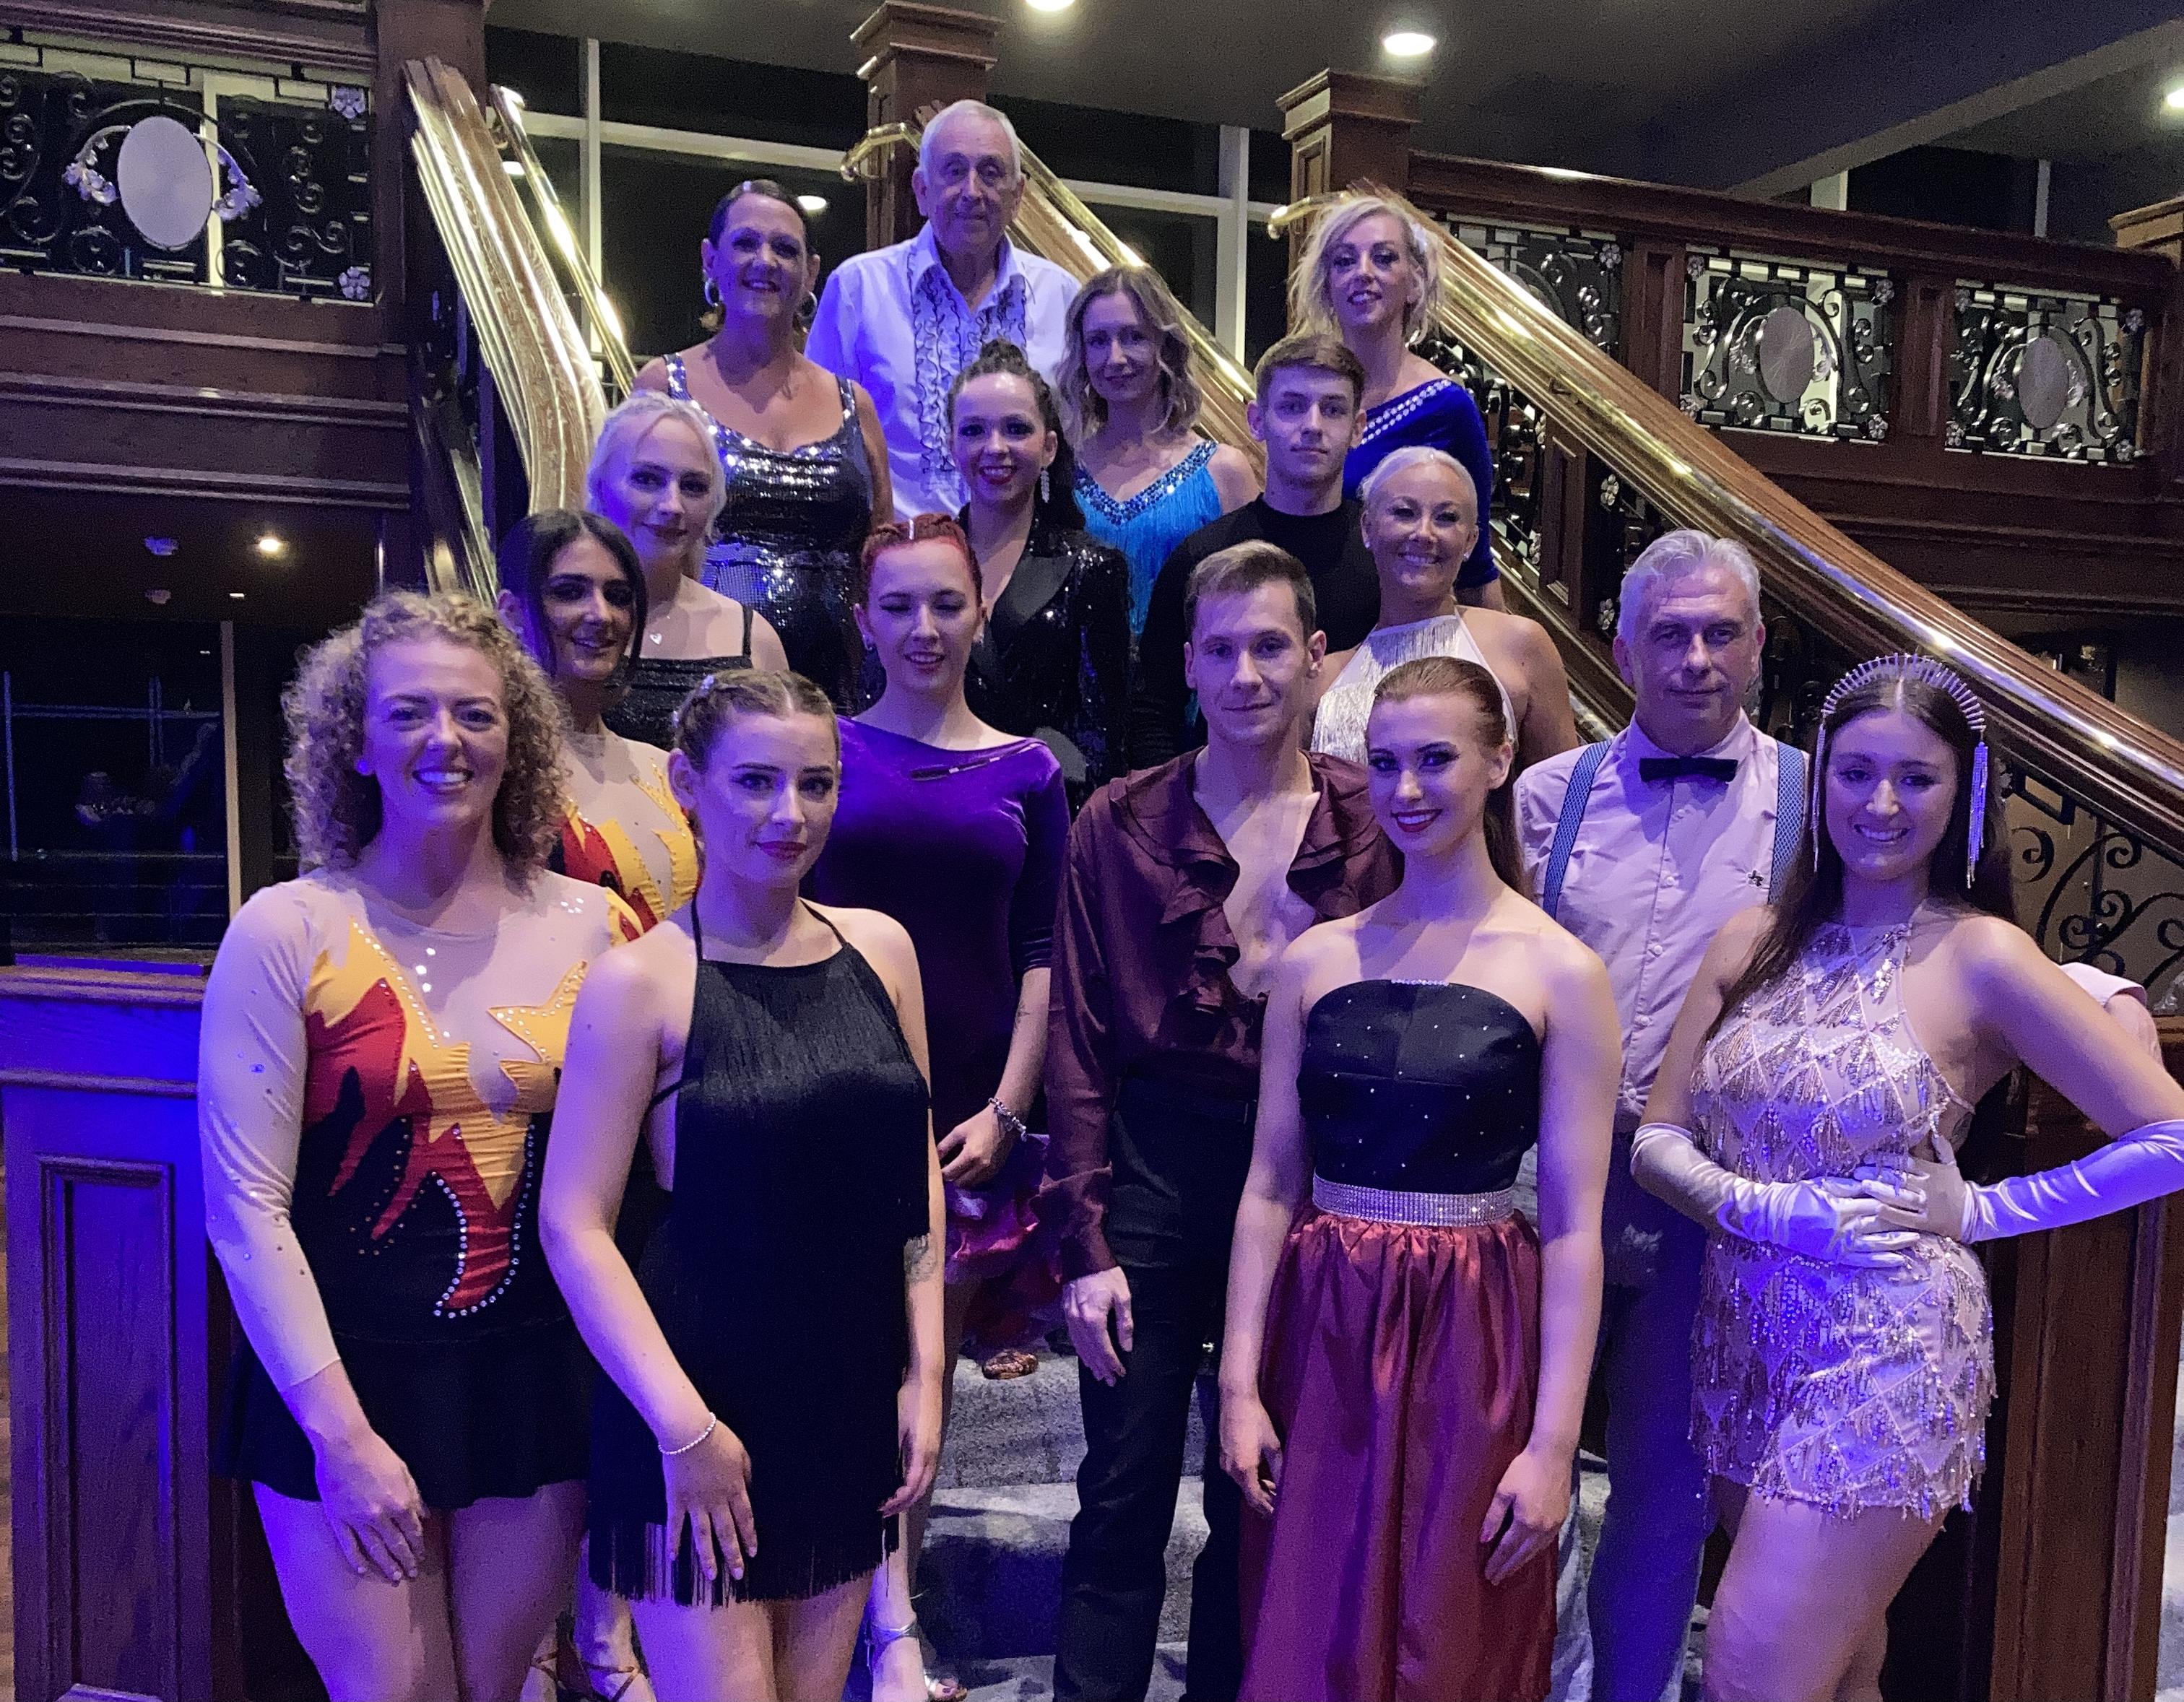 Strictly Come Dancing event raises £11,000 for St Joseph's Hospice